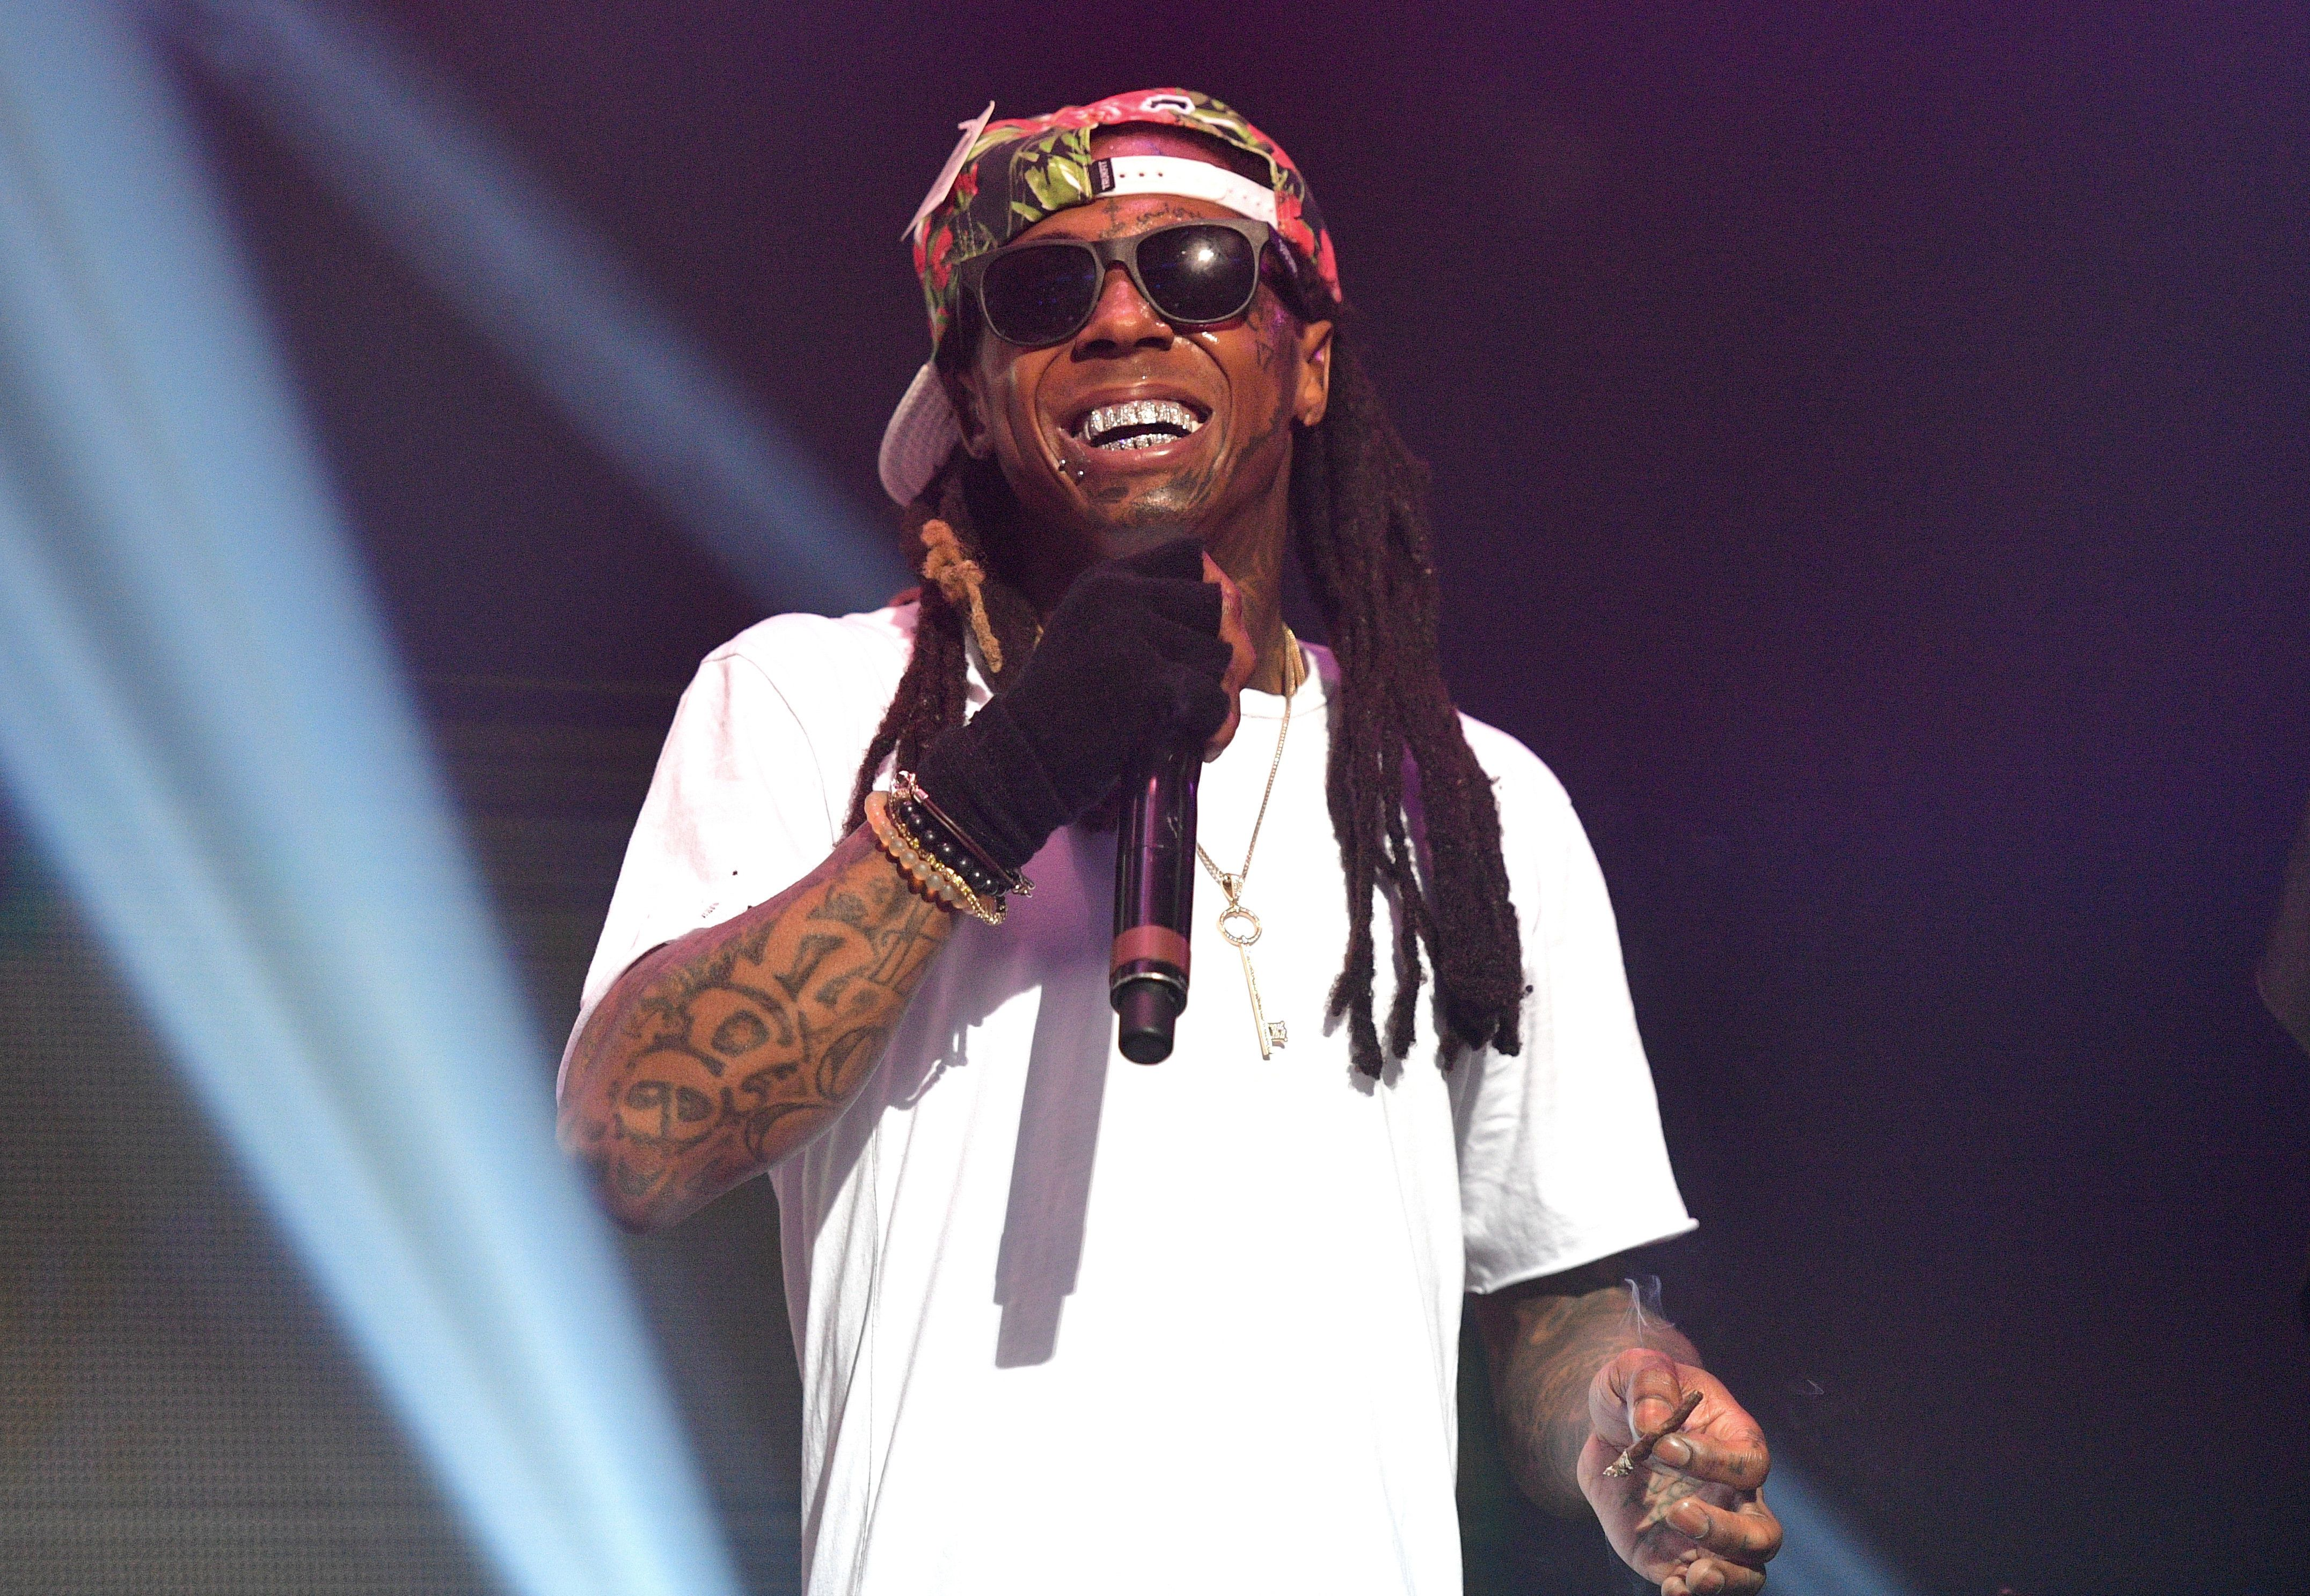 Lil Wayne Performs at Tidal X Collegrove at The Tabernacle on March 30, 2016 in Atlanta, Georgia. (Photo by Prince Williams/WireImage)